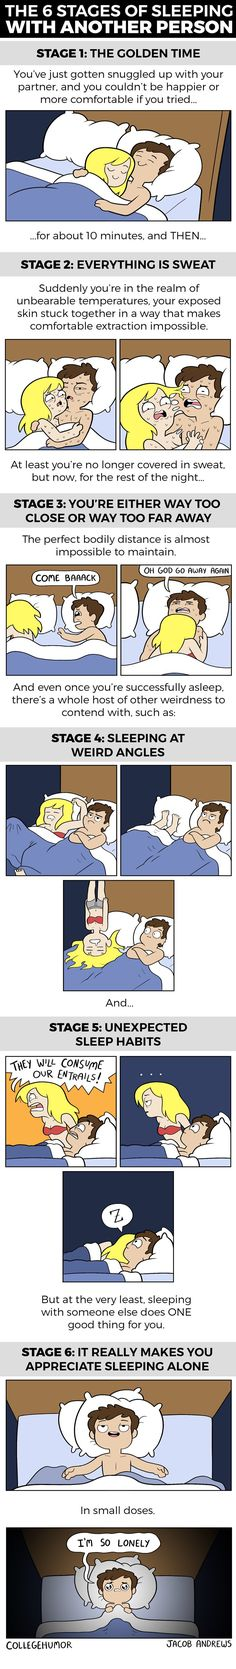 The 6 Stages of Sleeping With Your Partner